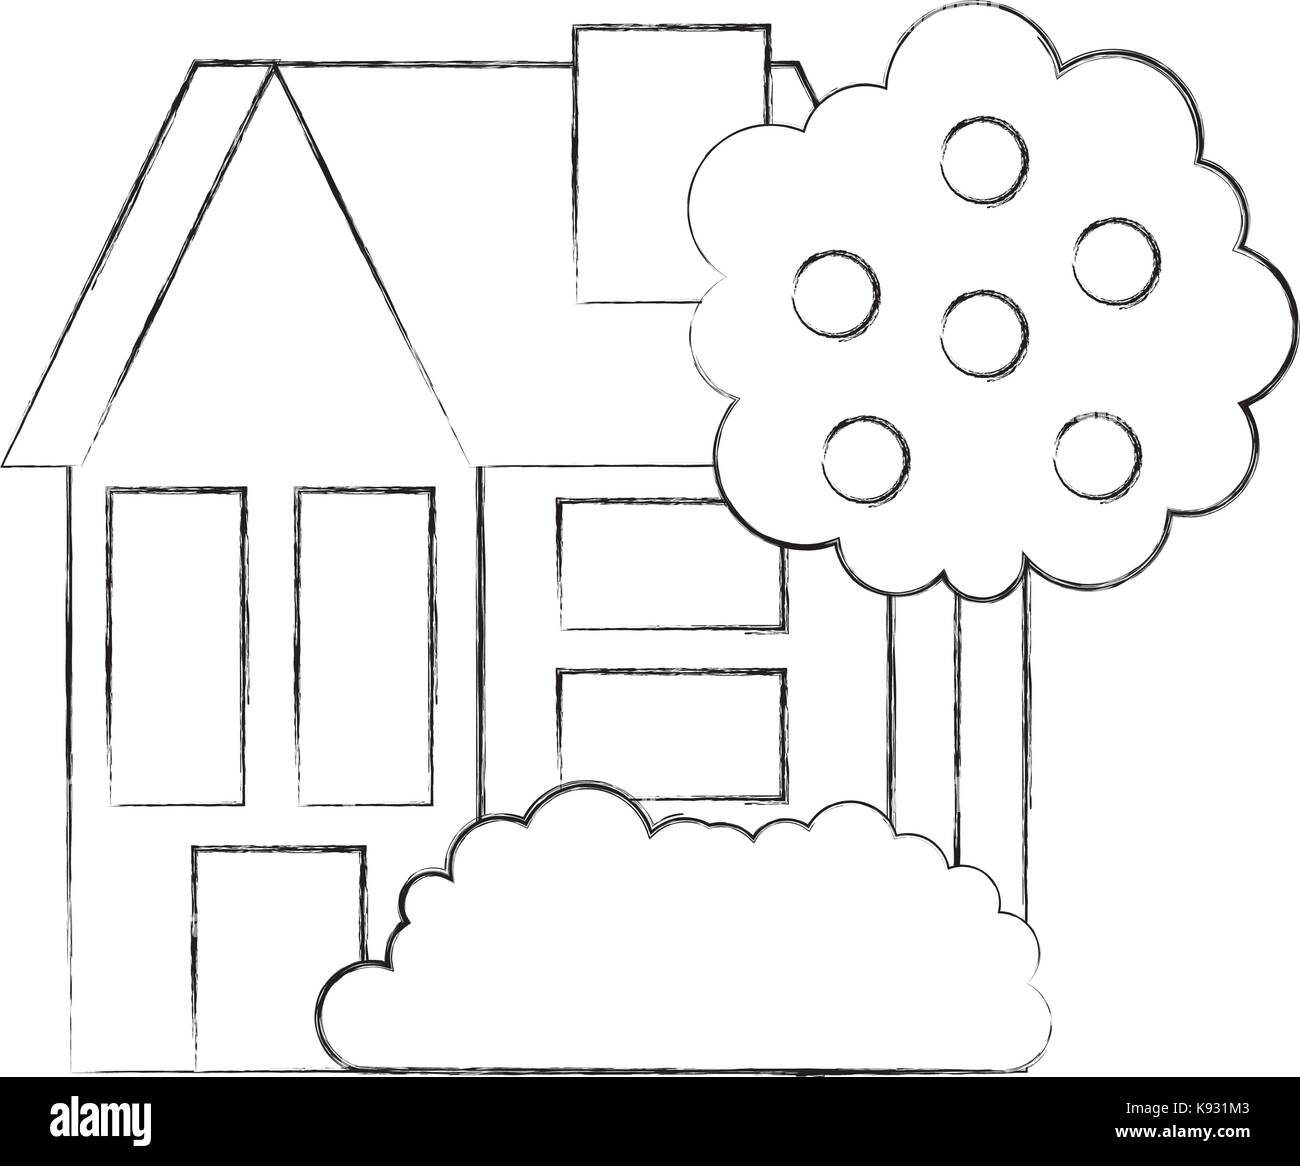 house fruit tree residence property real estate architecture - Stock Vector